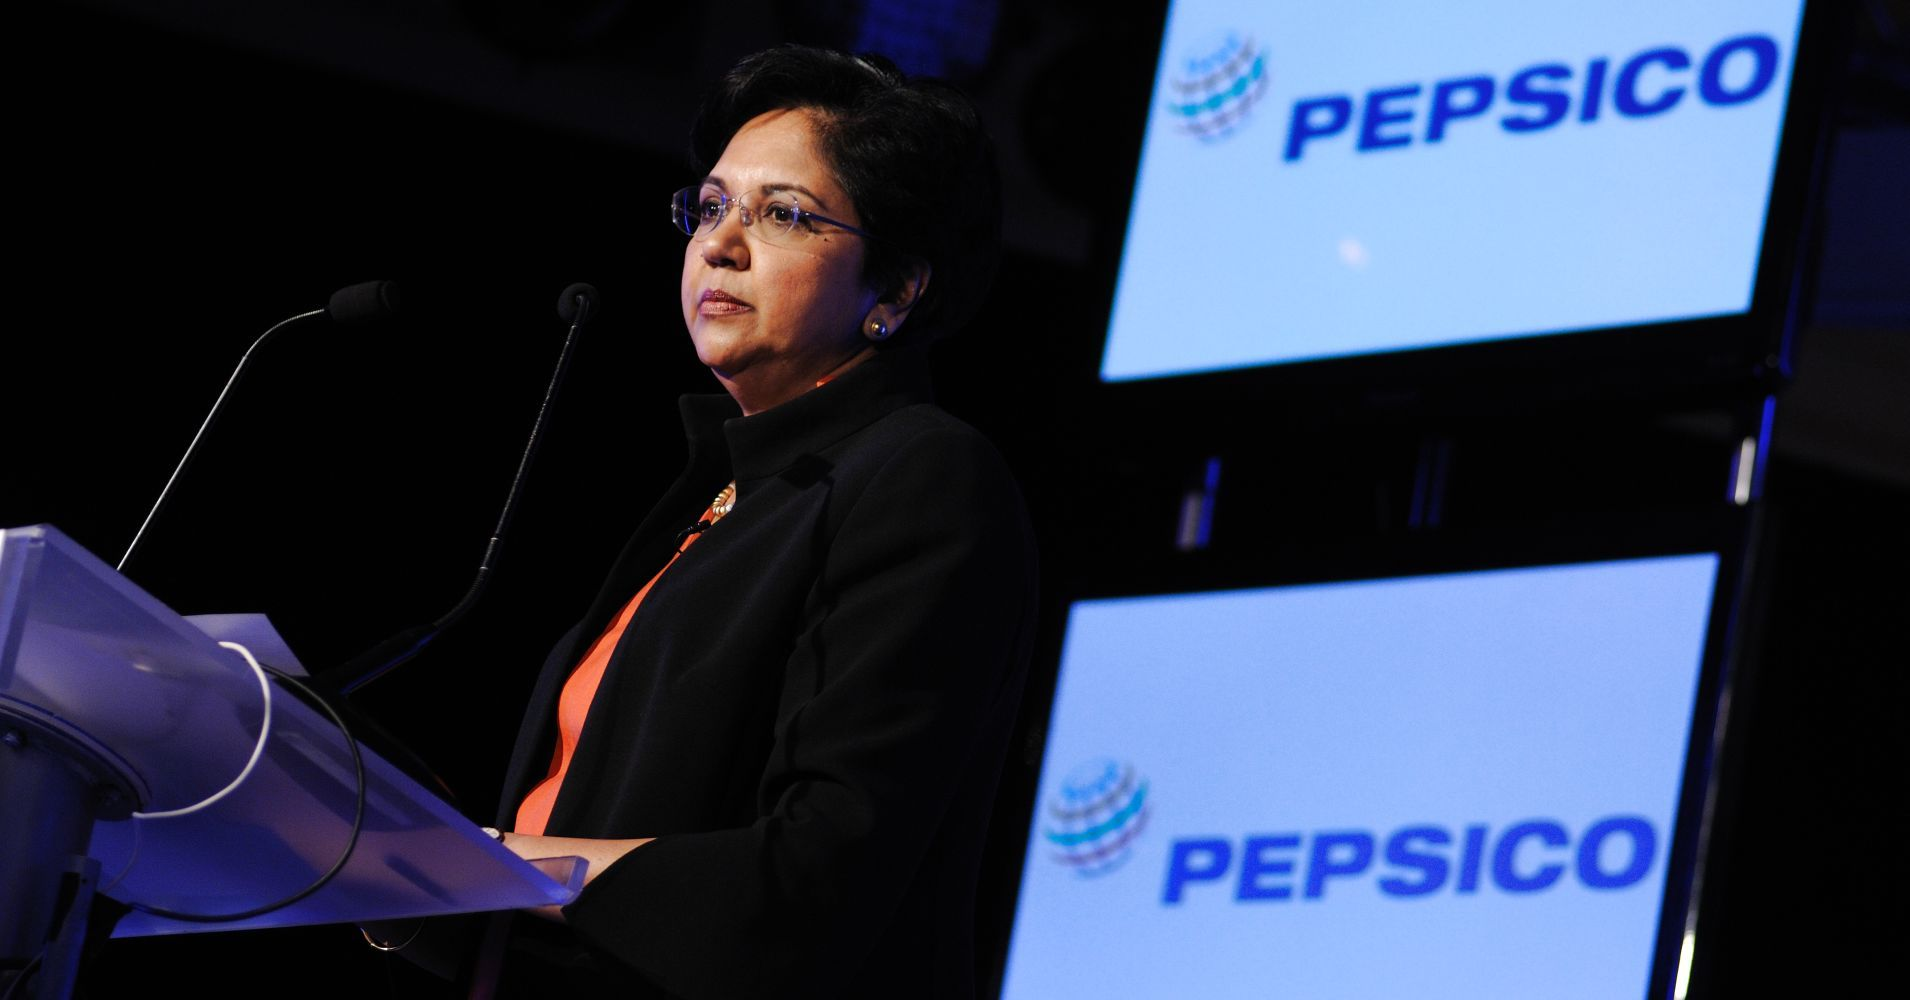 PepsiCo gets downgraded by Deutsche Bank due to rising